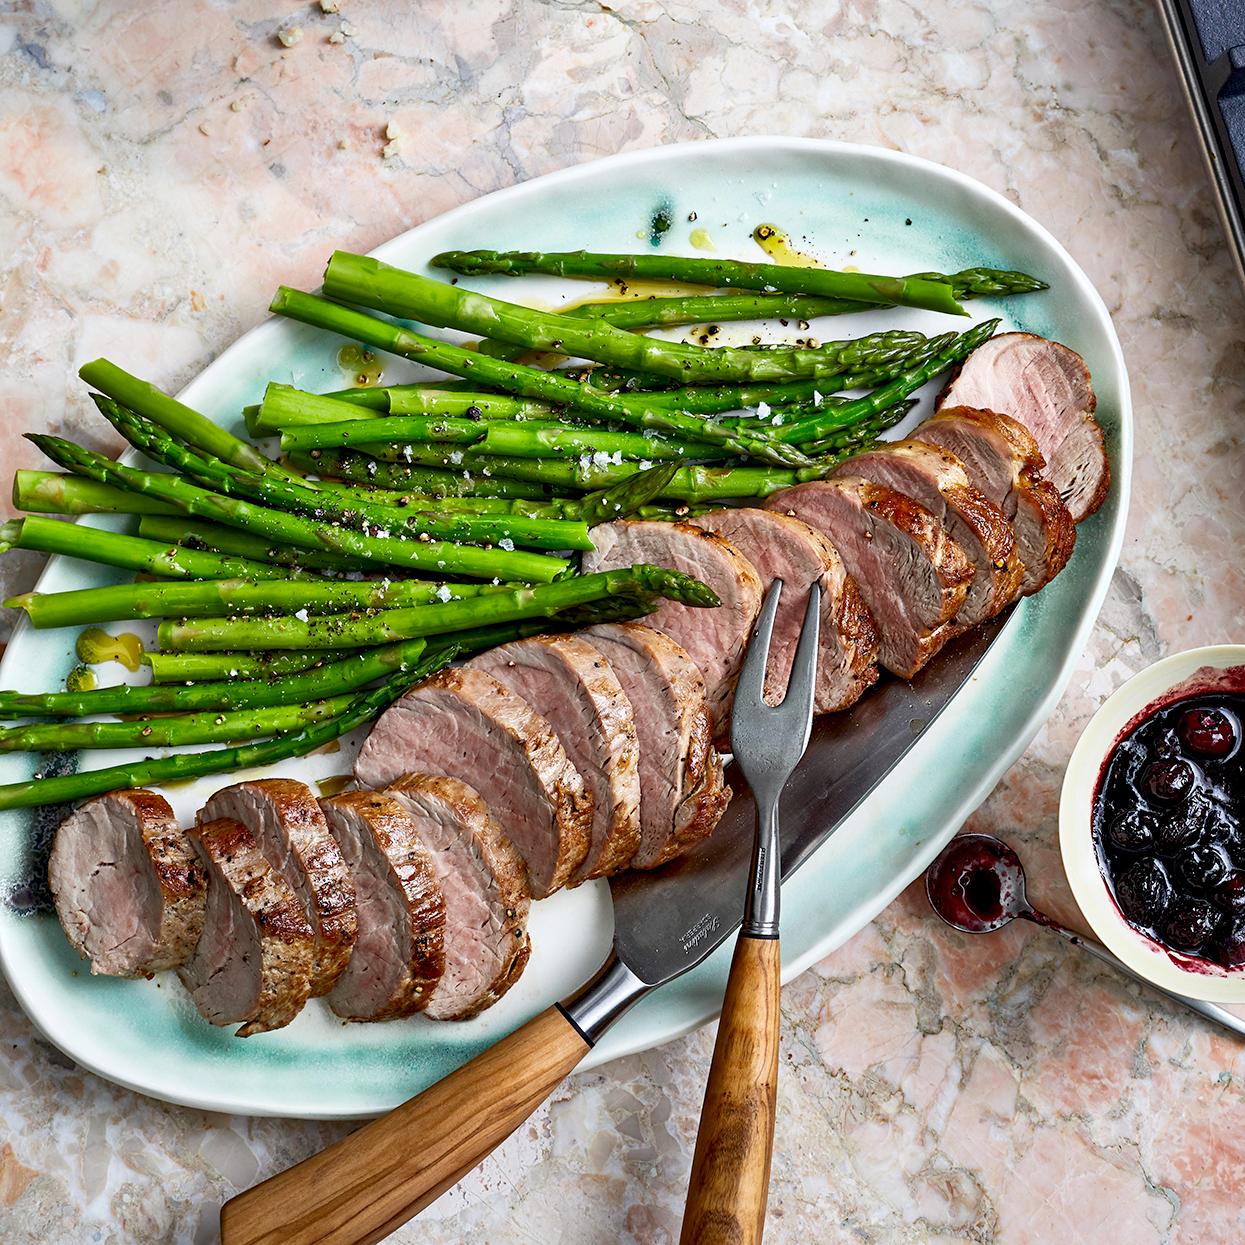 Pork with Blueberry Balsamic Sauce